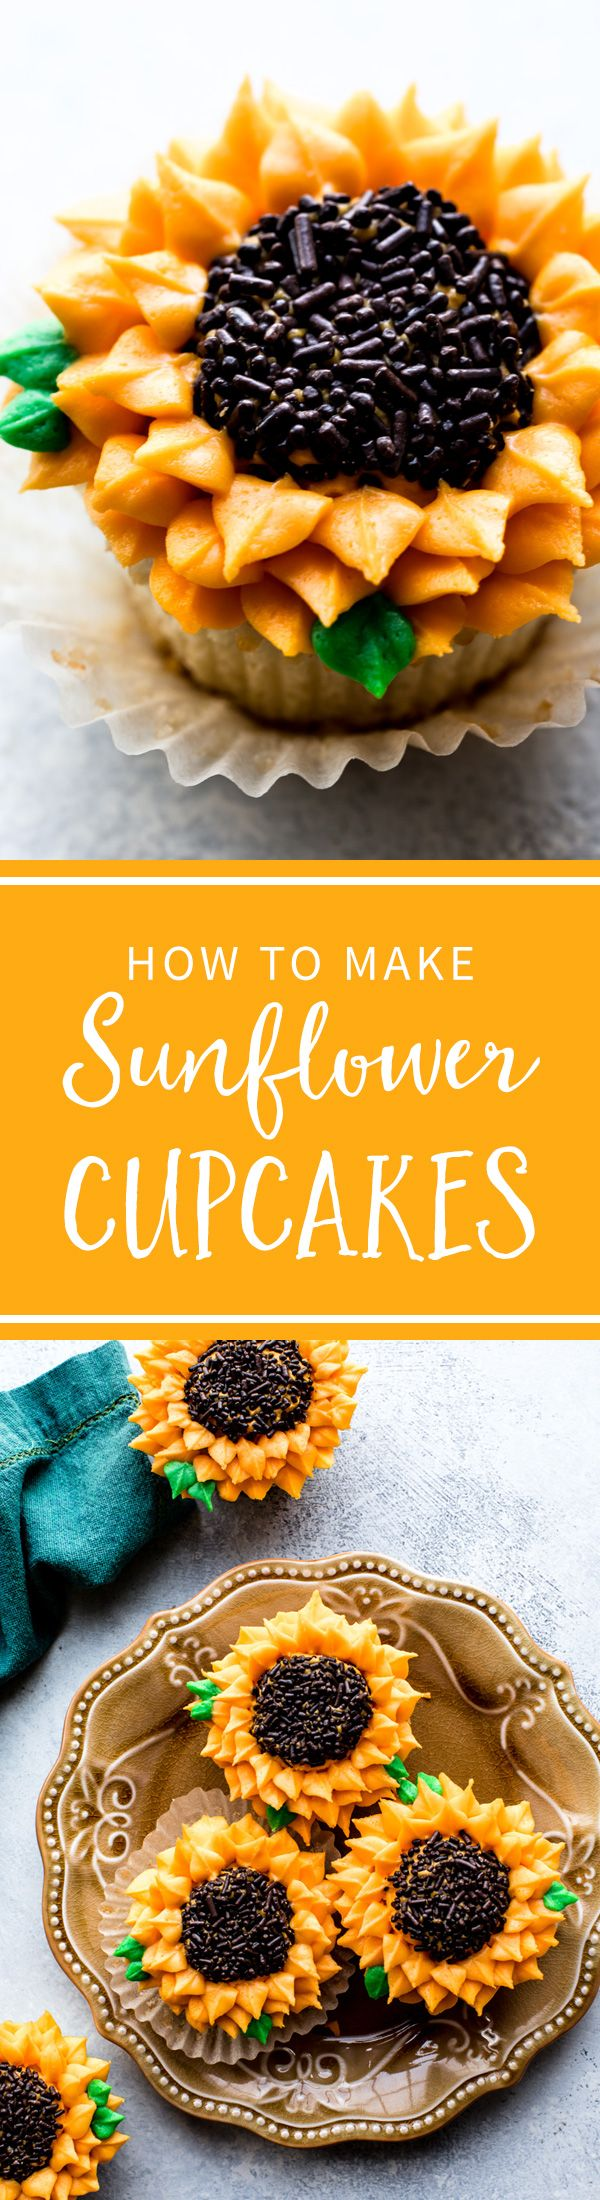 How to pipe sunflowers onto cupcakes! Sunflower cupcakes recipe on sallysbakingaddiction.com